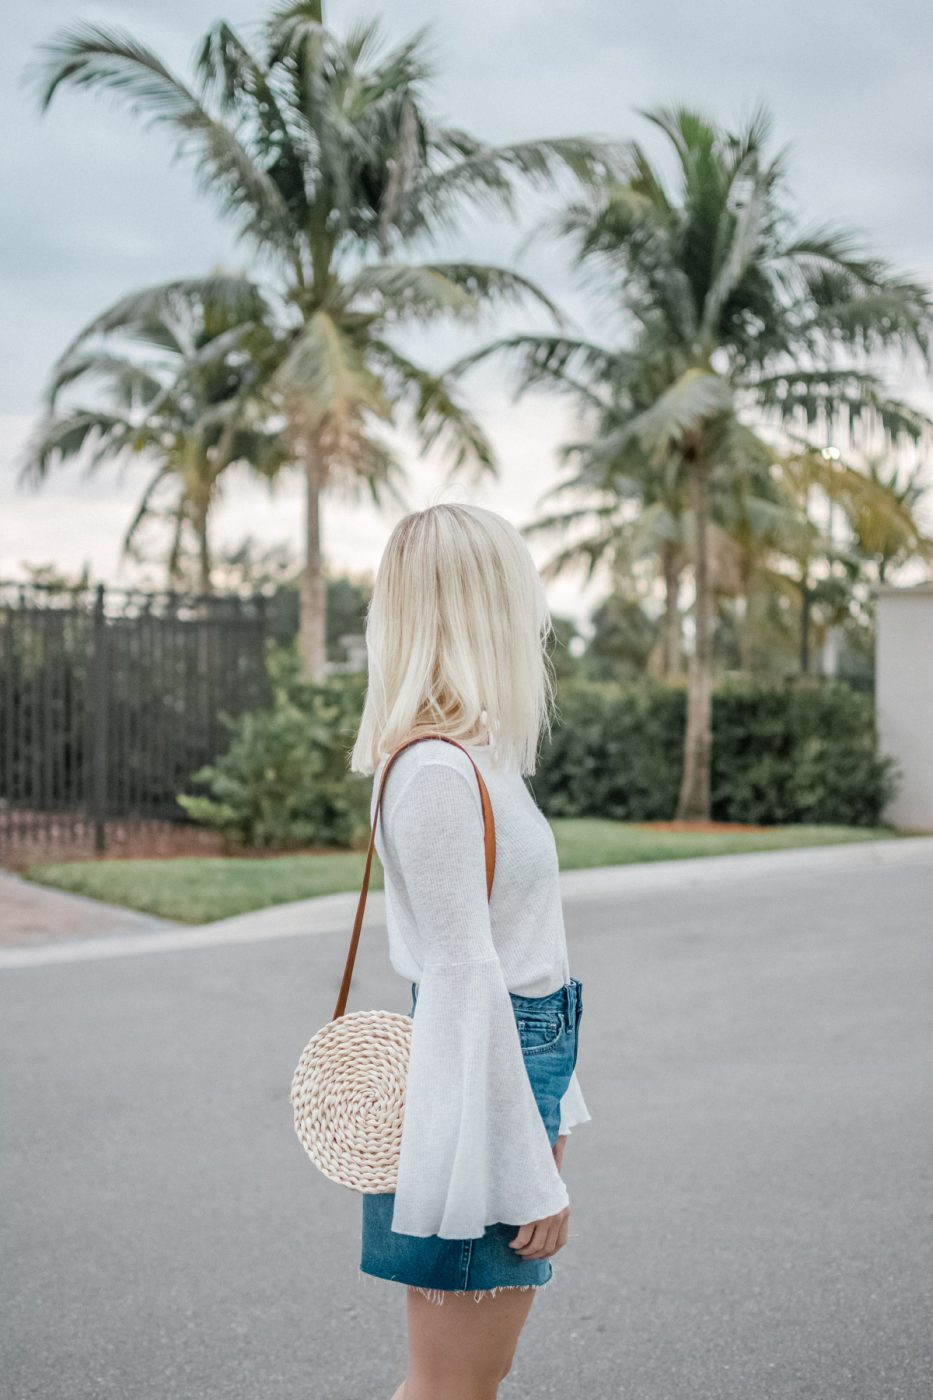 DIY Straw Crossbody Bag by Jenny Bess of Sweet Teal